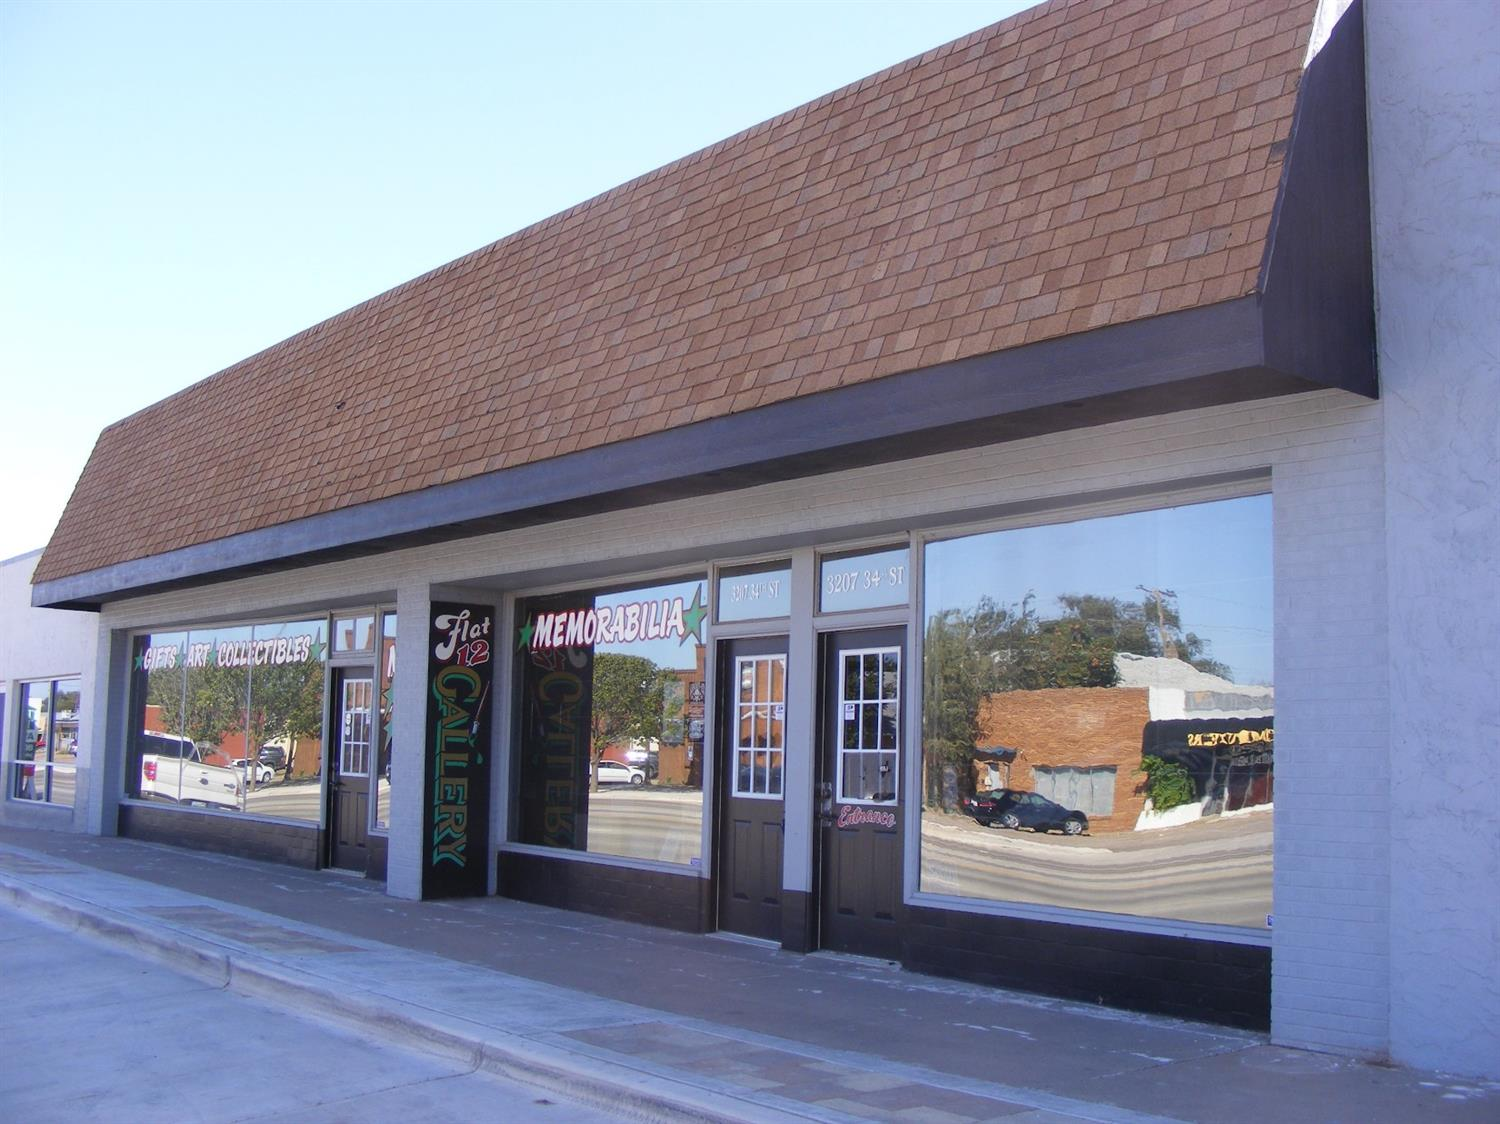 Recently remodeled retail space that can be converted to office space. Remodeled in 2014. For More Information, Text Code 21919 to 35244